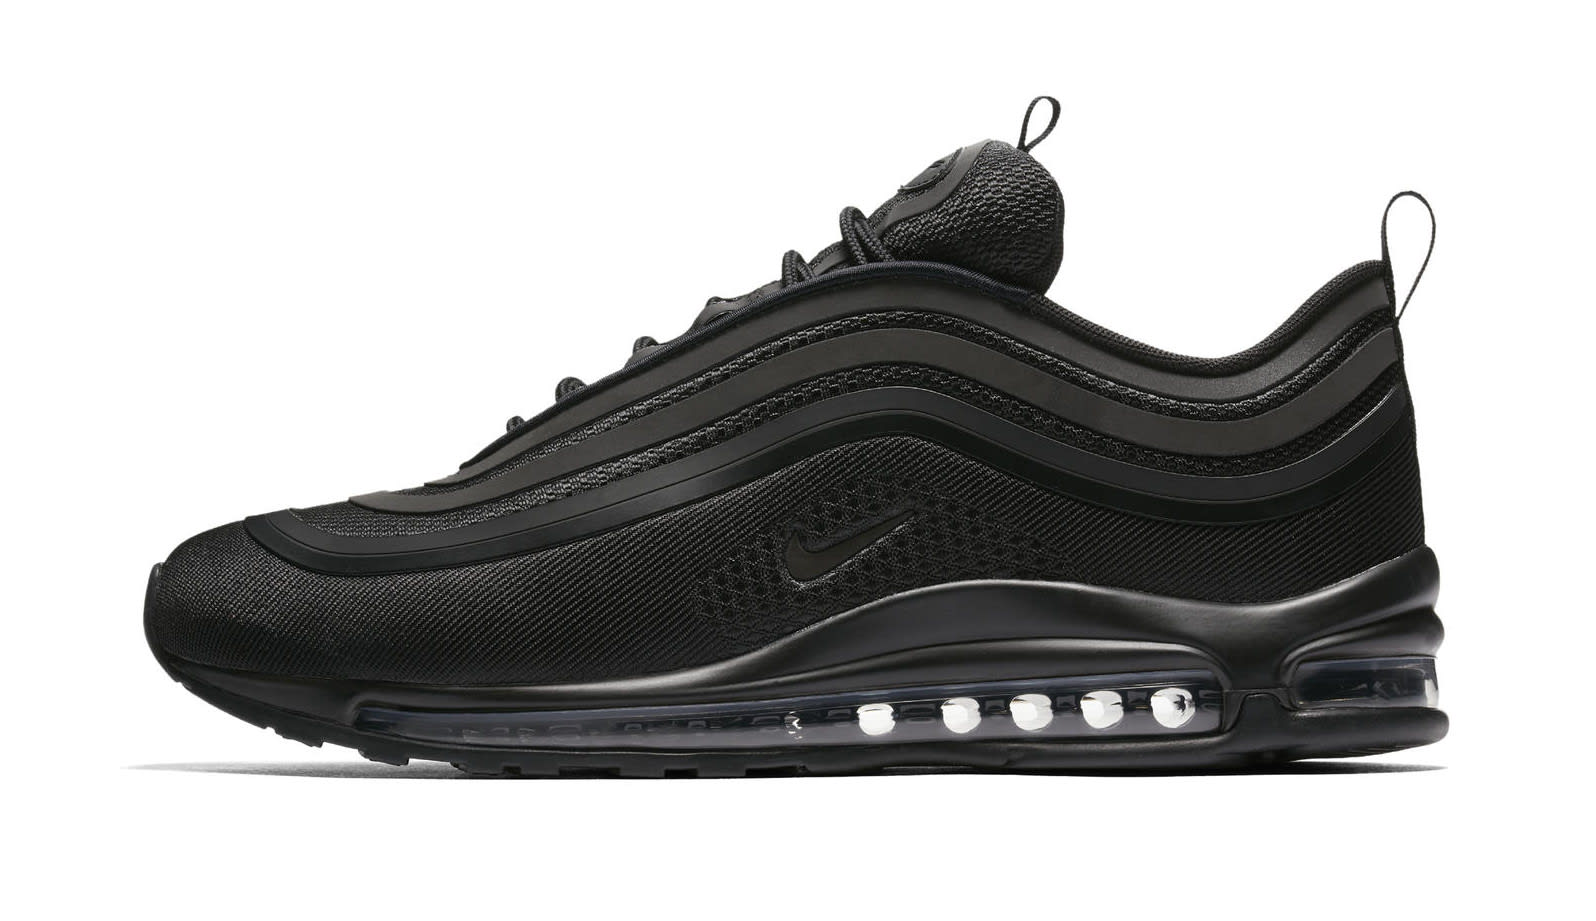 Cheap Nike Air Max 97 Premium 男鞋. Cheap Nike TW